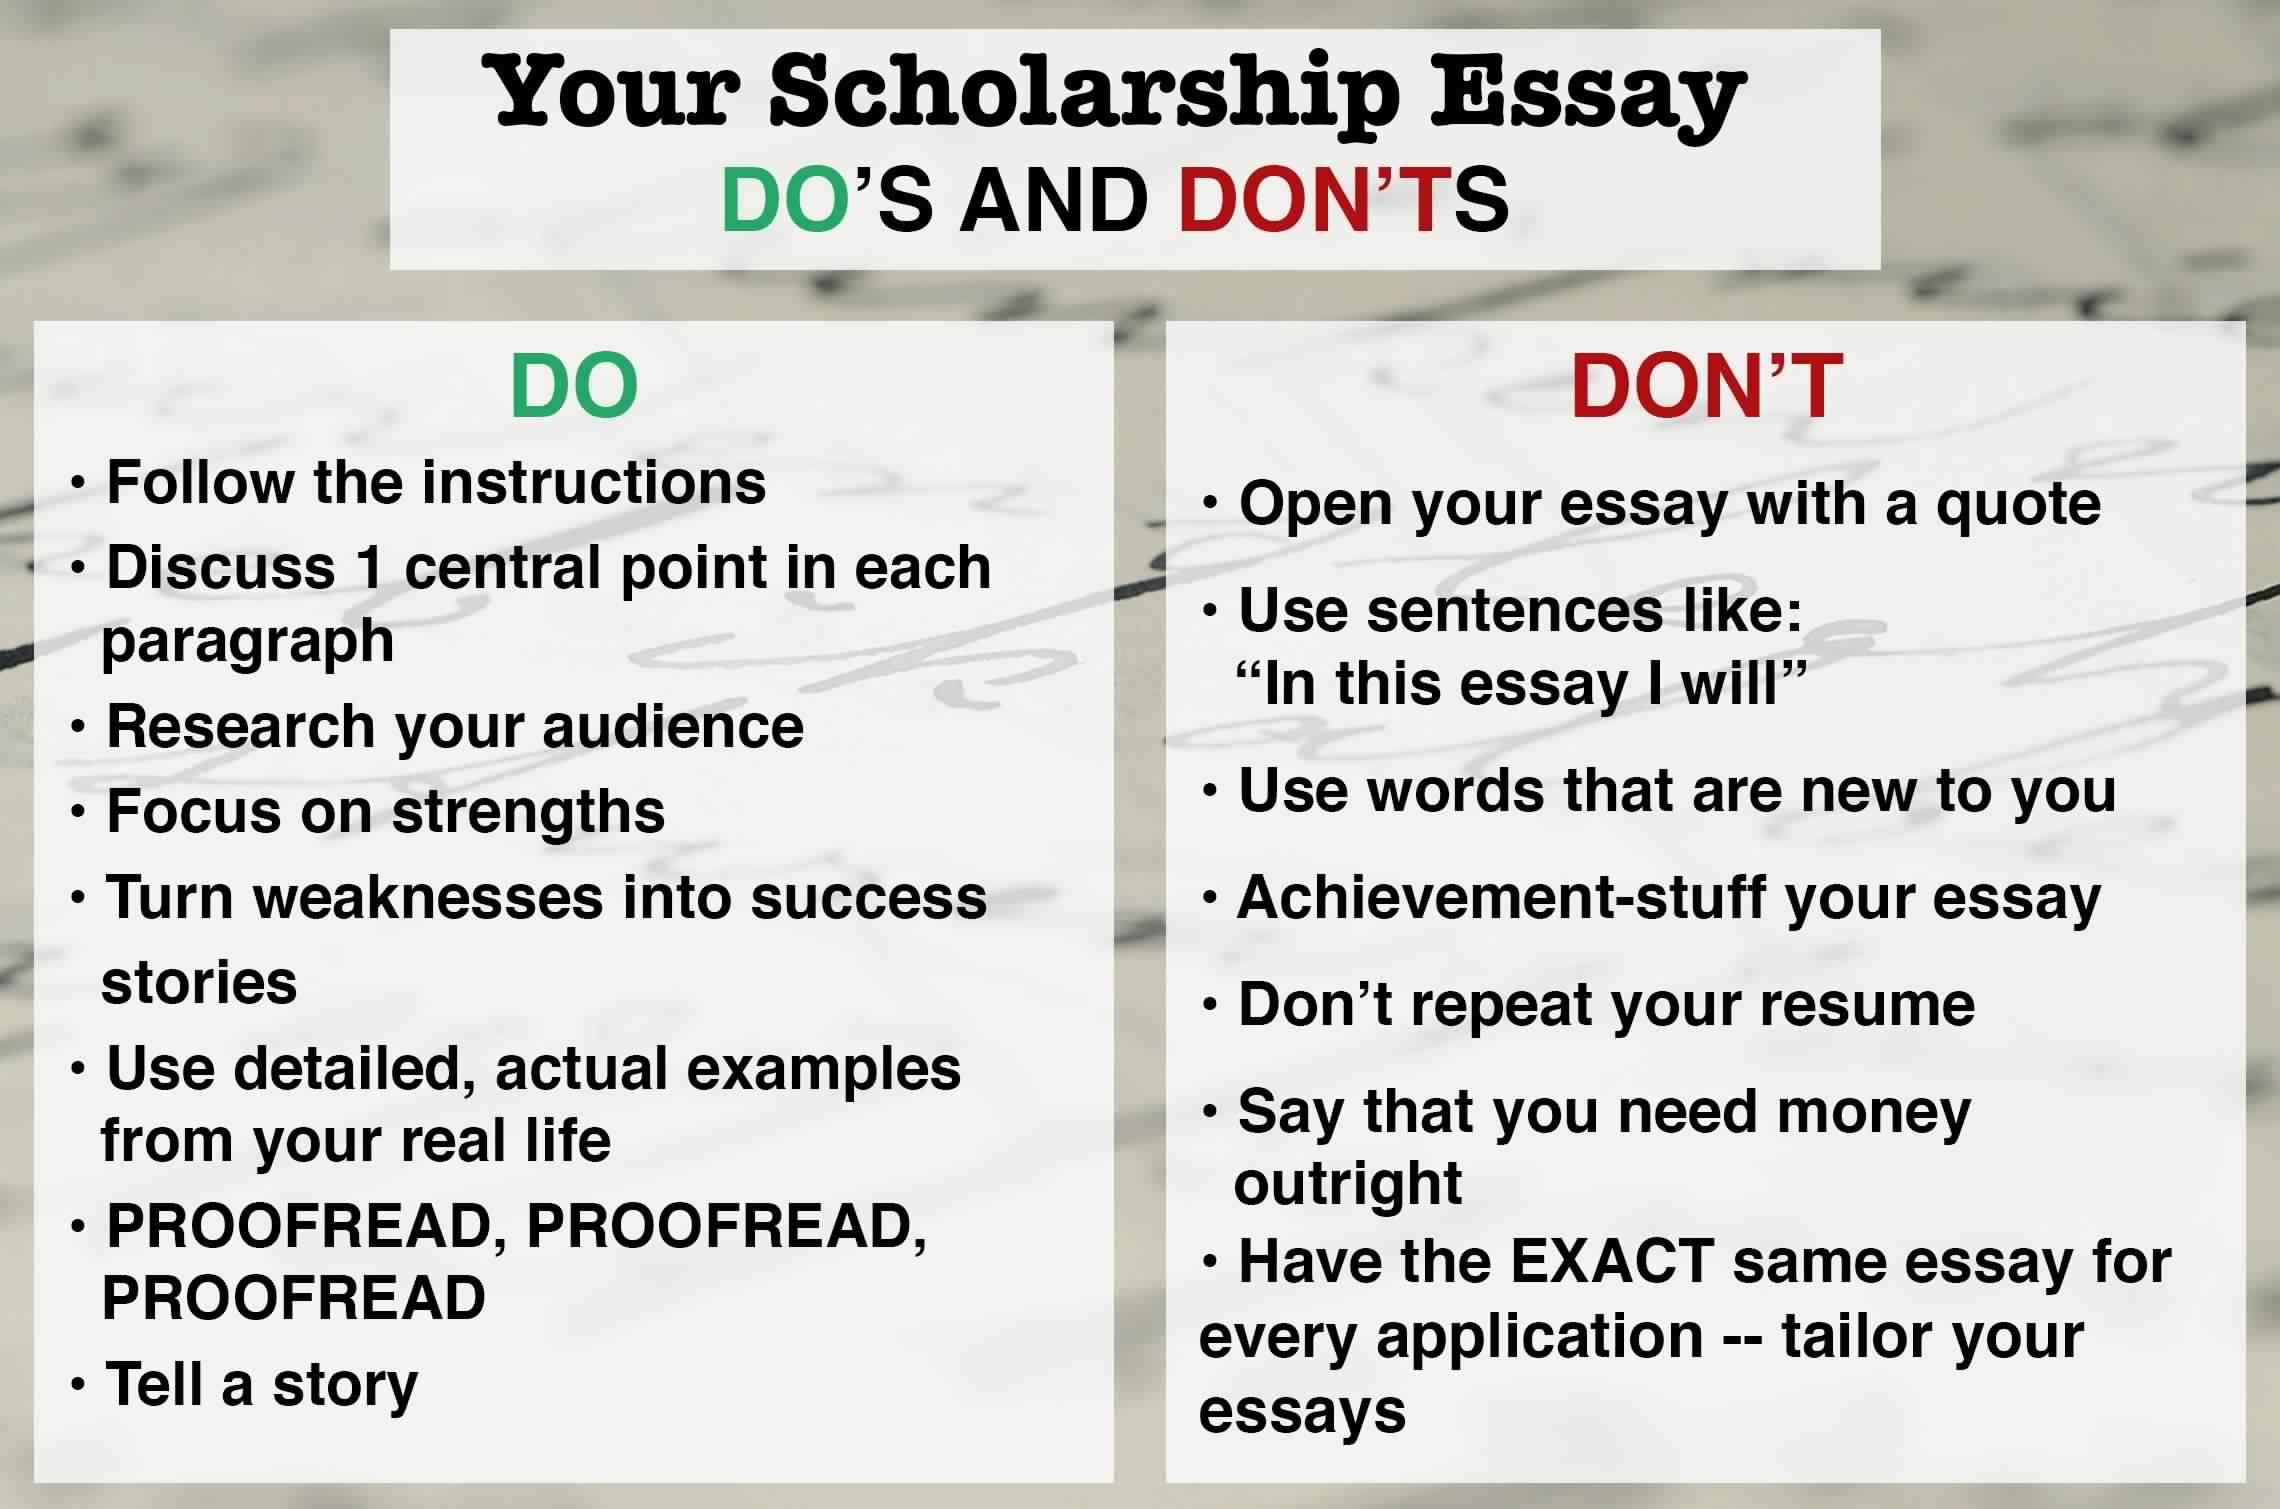 What format should I write my scholarship essay? – The Best Education Blog